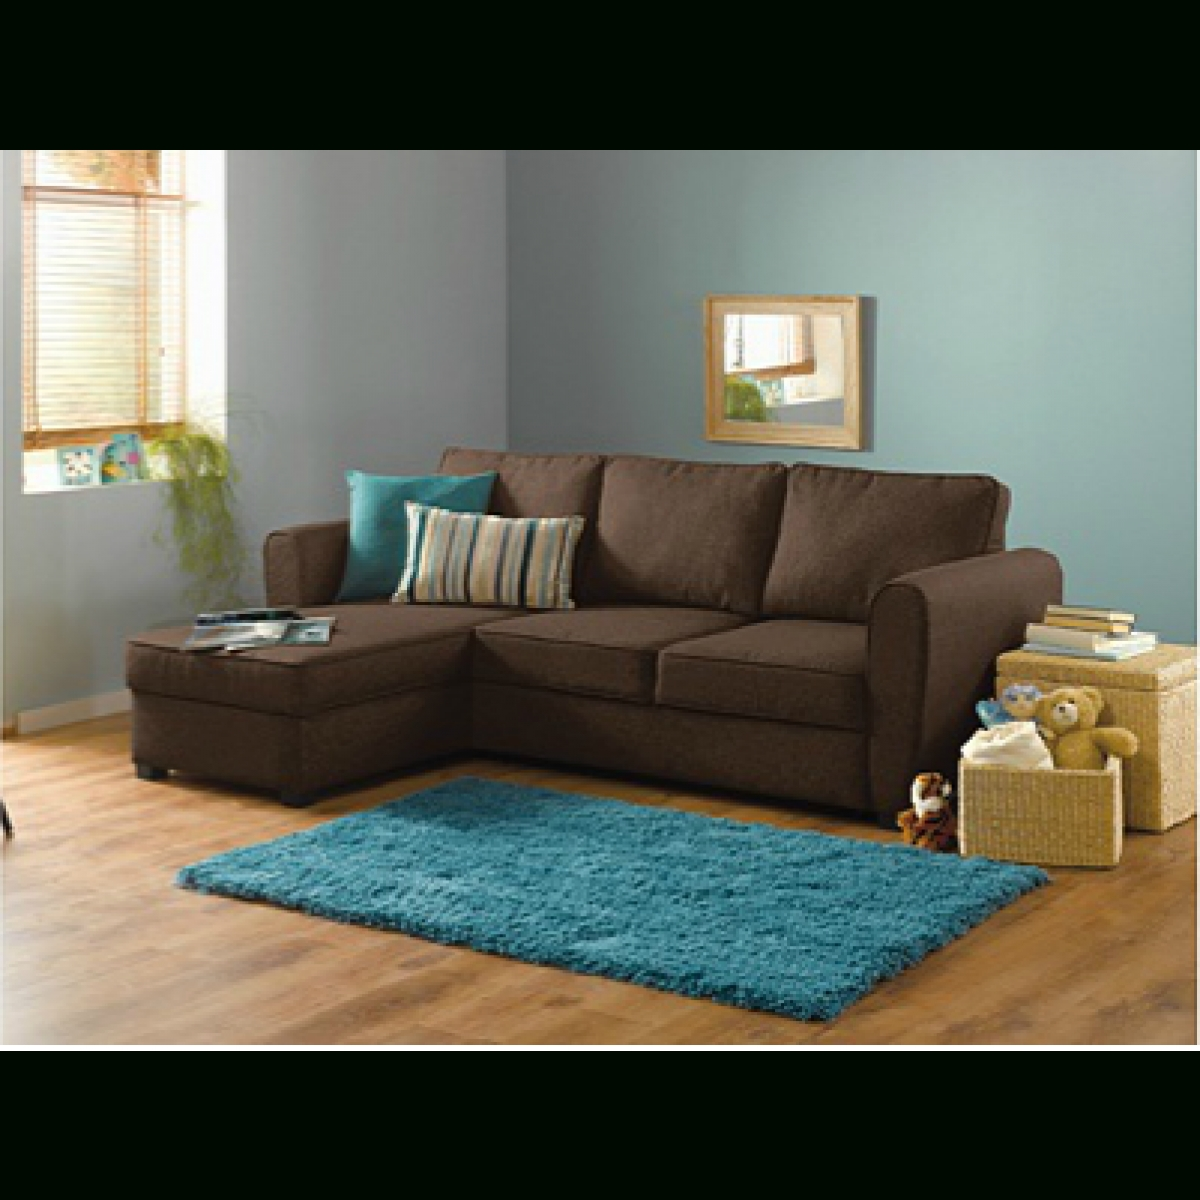 Fabric Corner Sofas Throughout Most Recent Home New Siena Fabric Corner Sofa Bed W/ Storage – Chocolate (View 9 of 20)